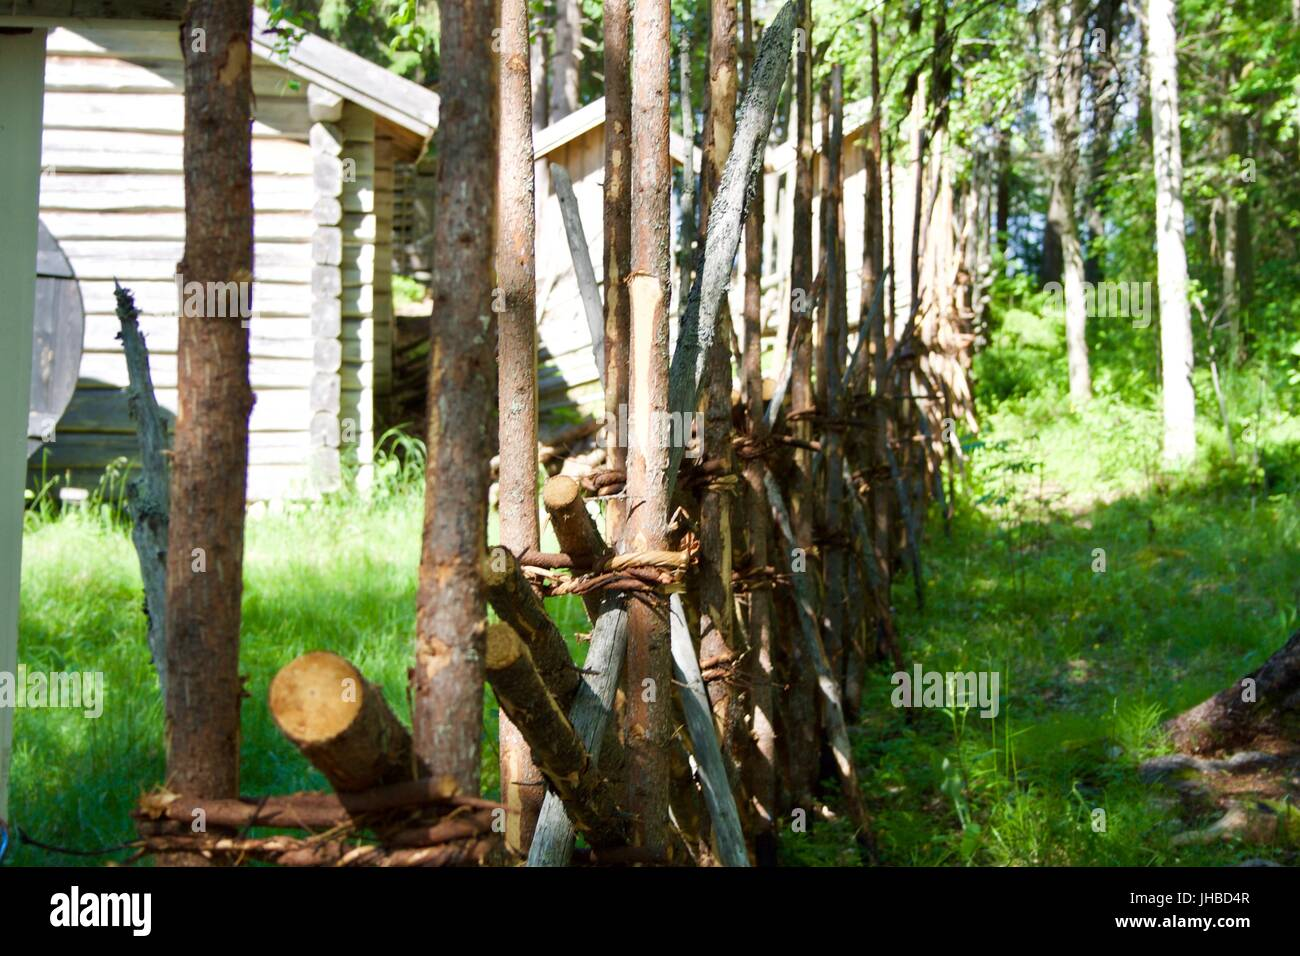 Traditional Finnish wooden fence. - Stock Image